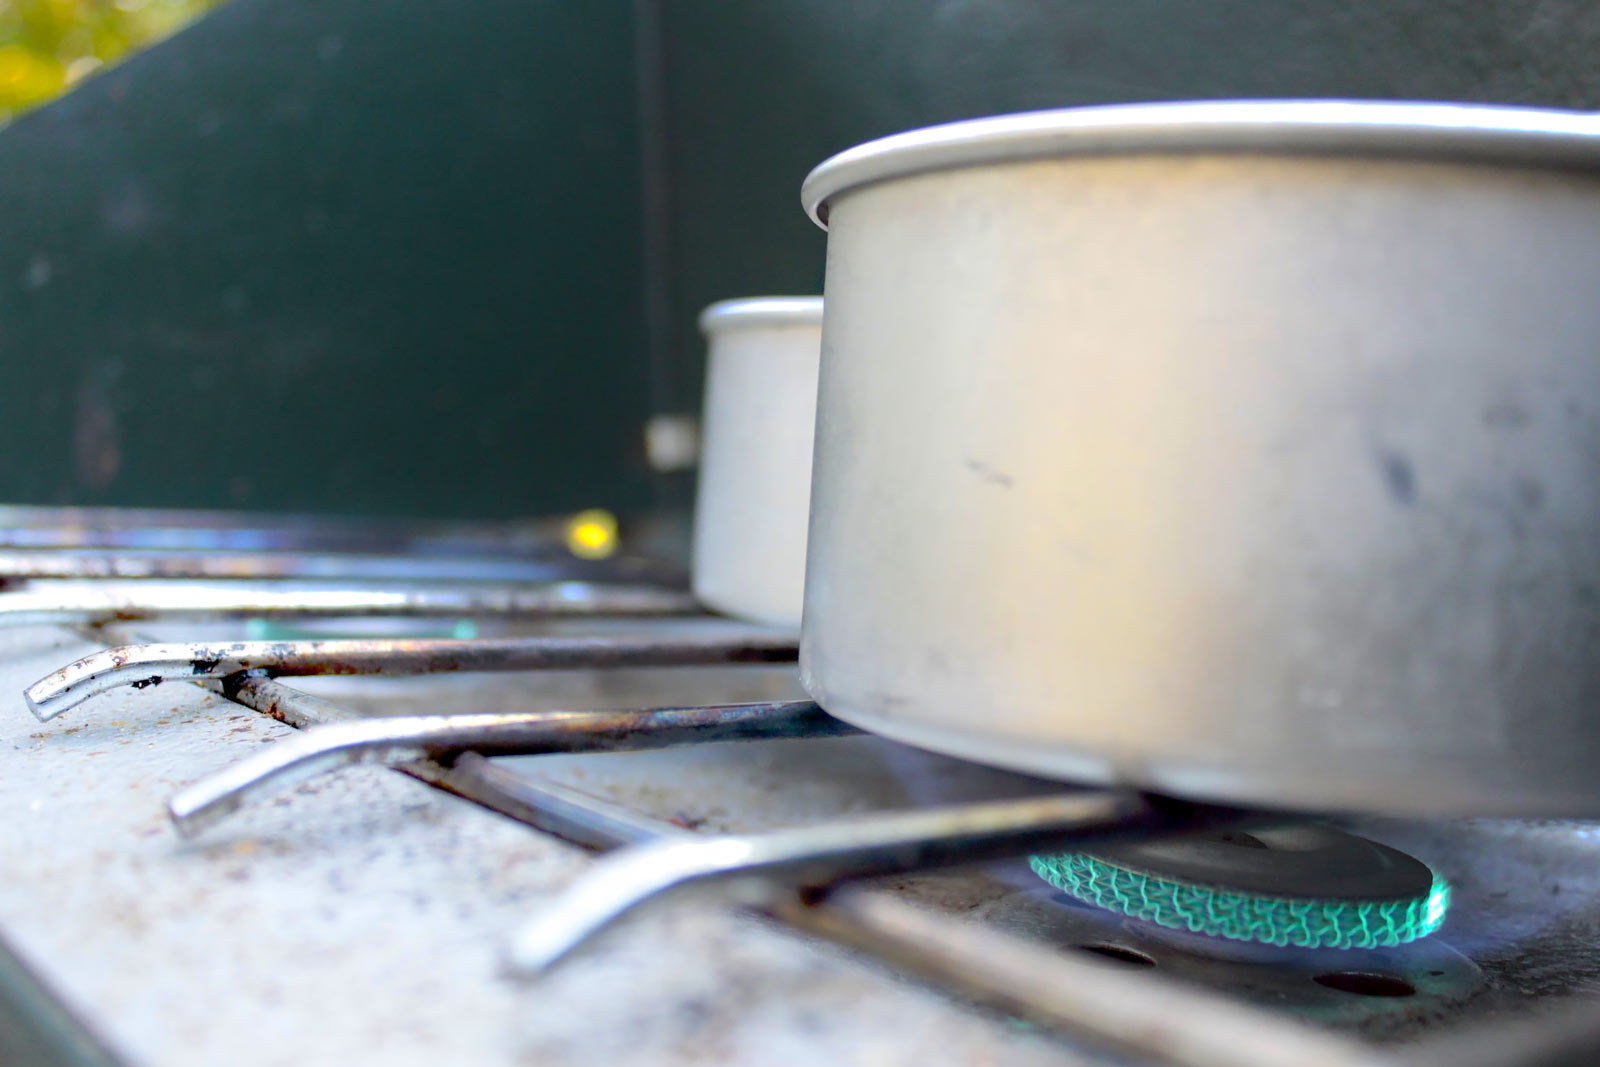 Photo of a lit propane gas burner of a Coleman camp stove.